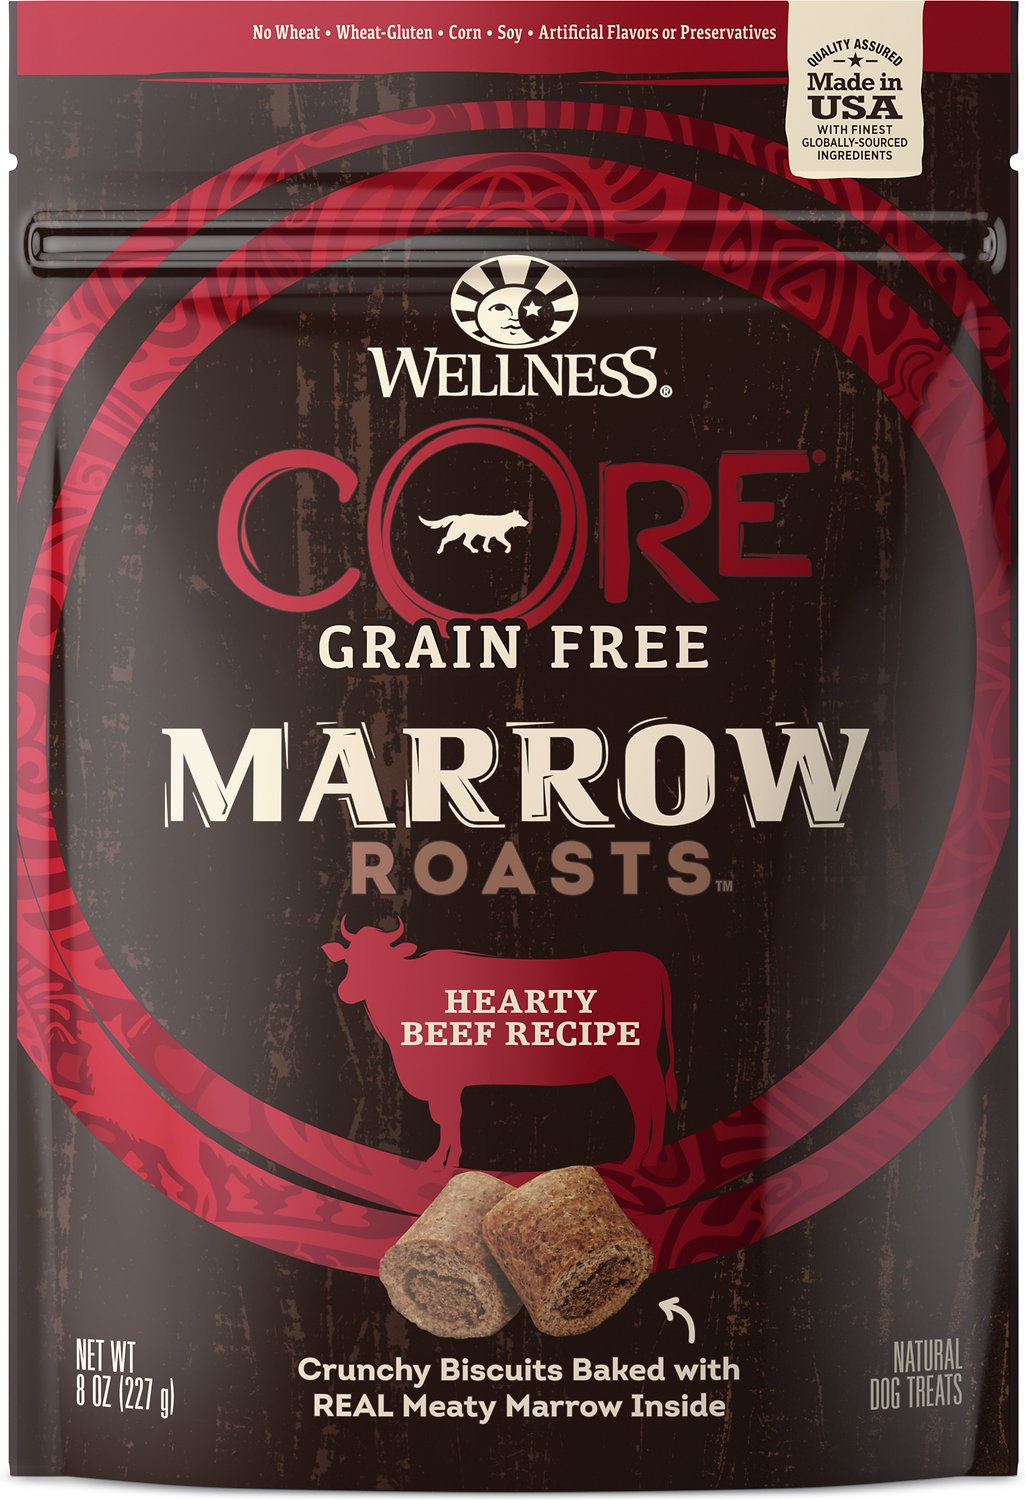 Wellness CORE Grain-Free Marrow Roasts Hearty Beef Recipe Dog Treats, 8-oz bag